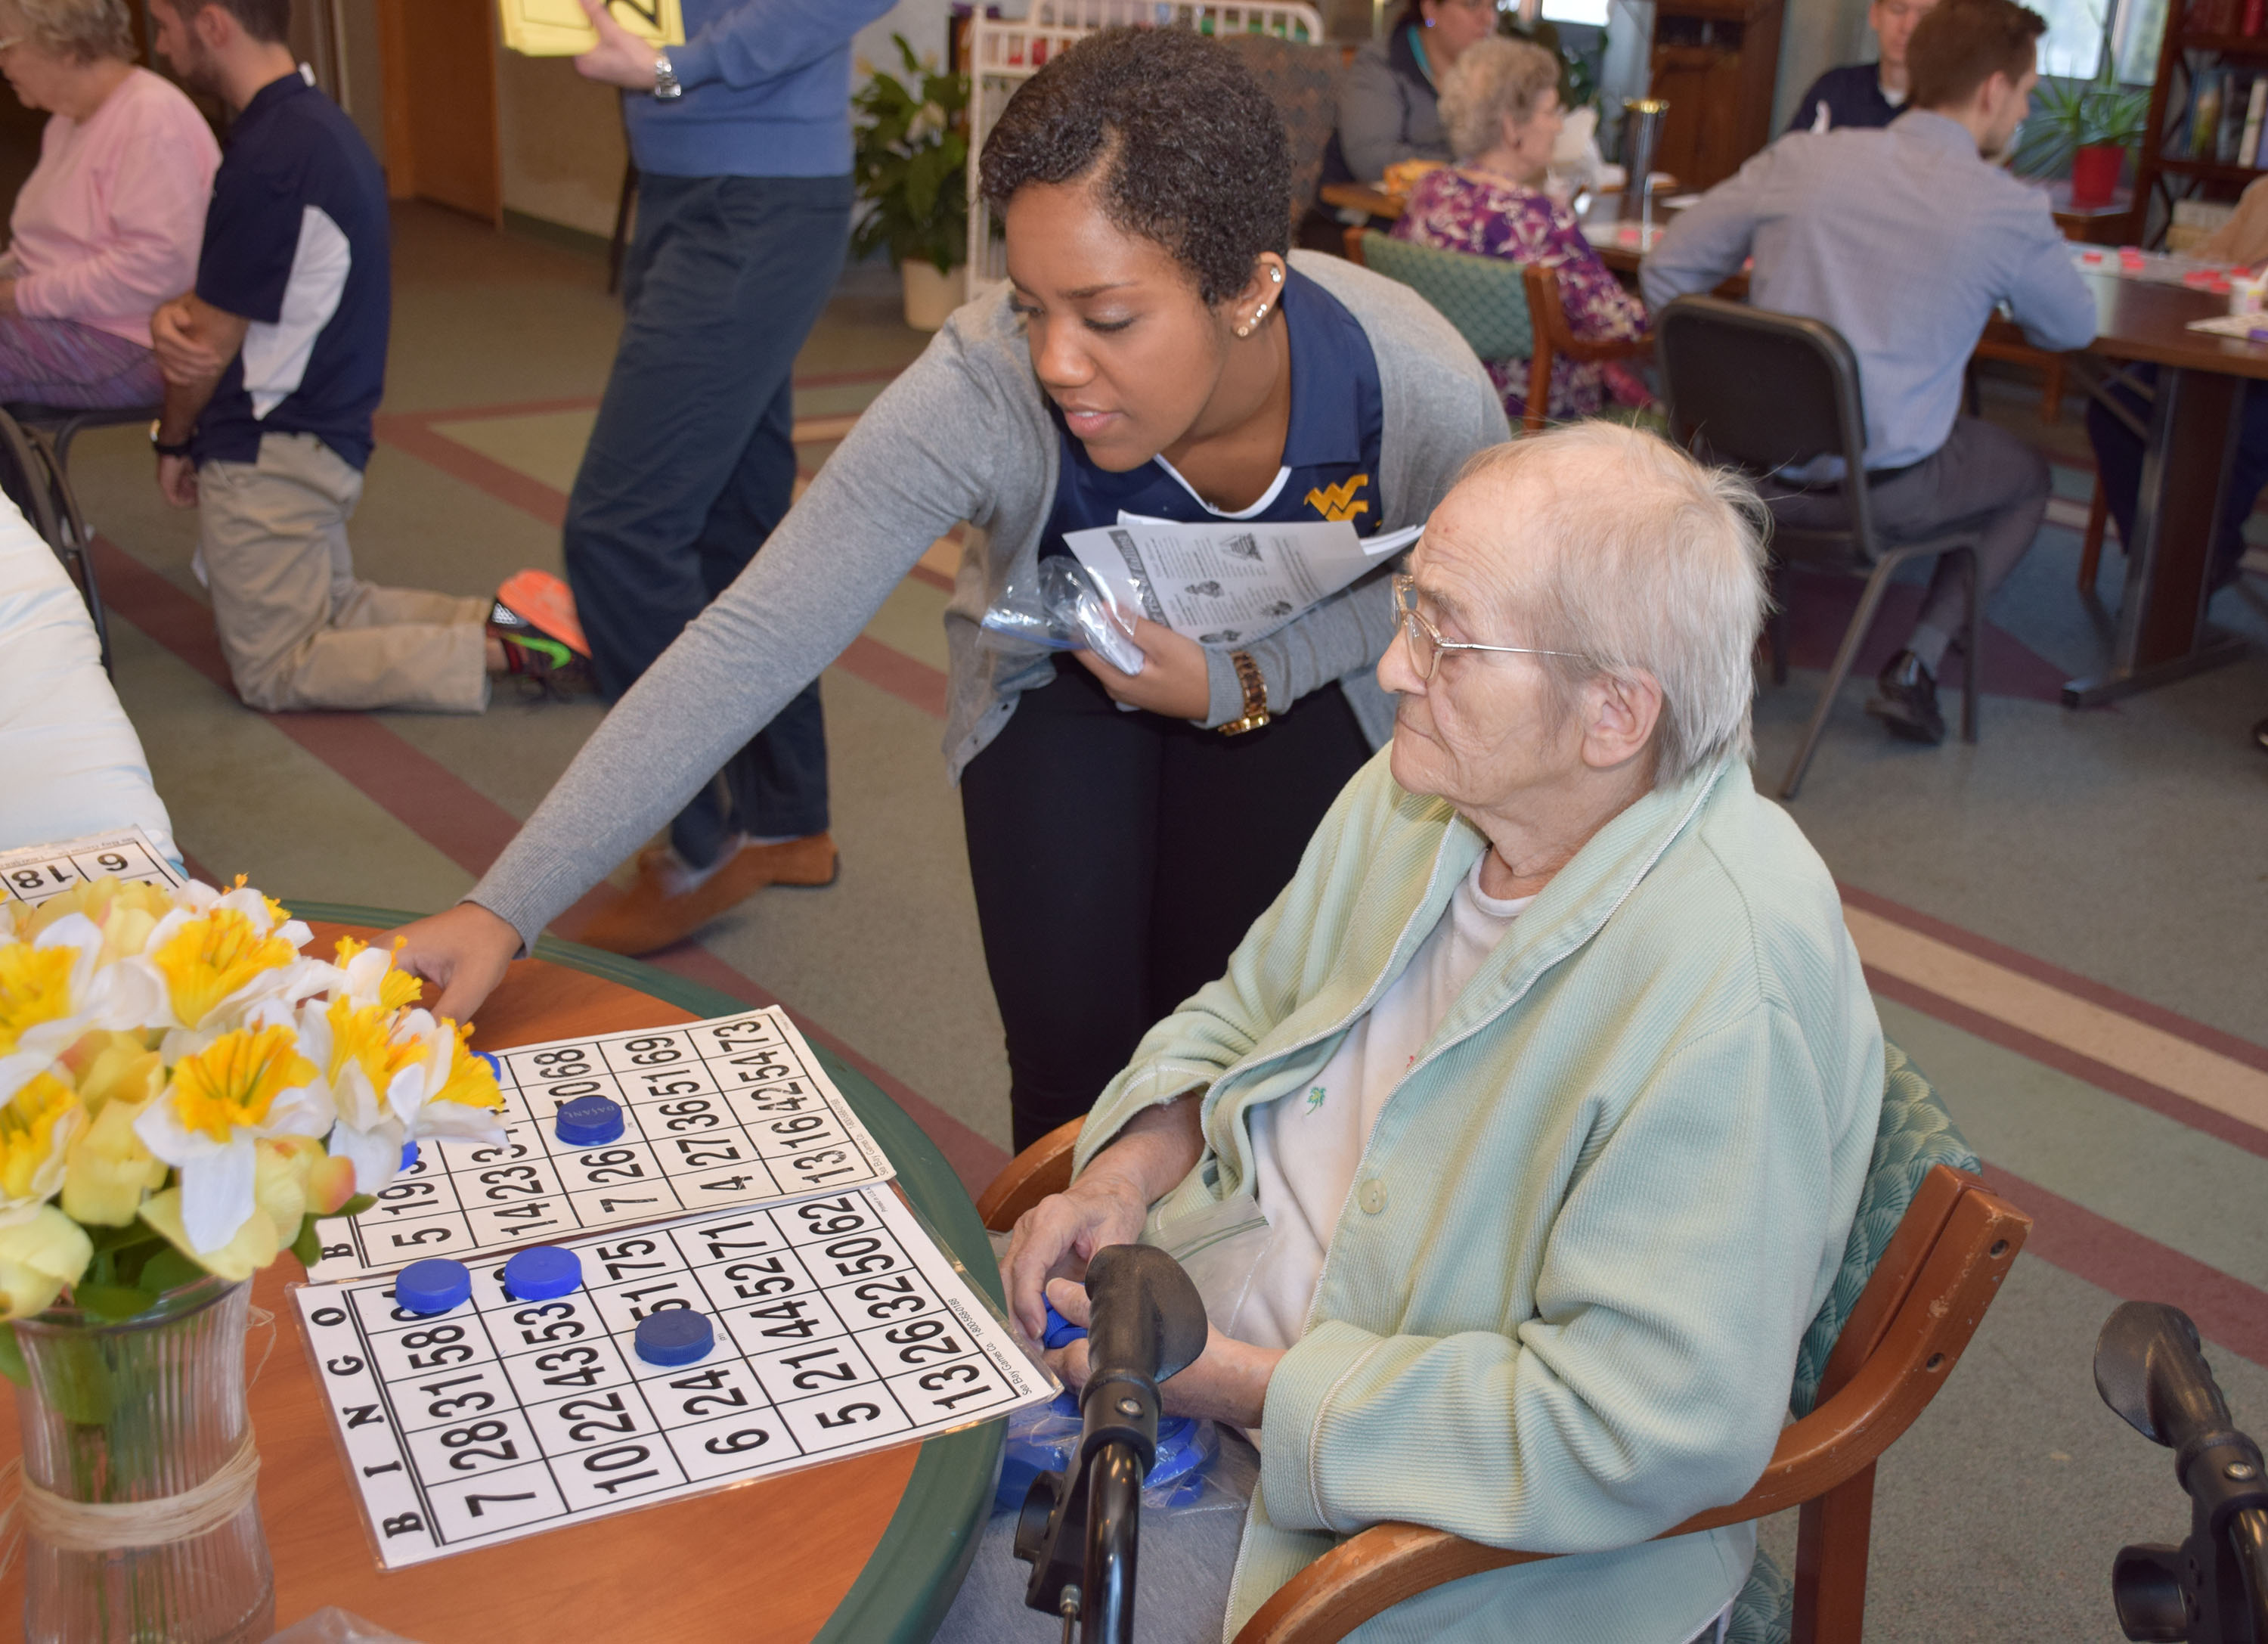 WVU student pharmacist Rebecca Berhanu (left) works with Sundale resident Mary Stump.